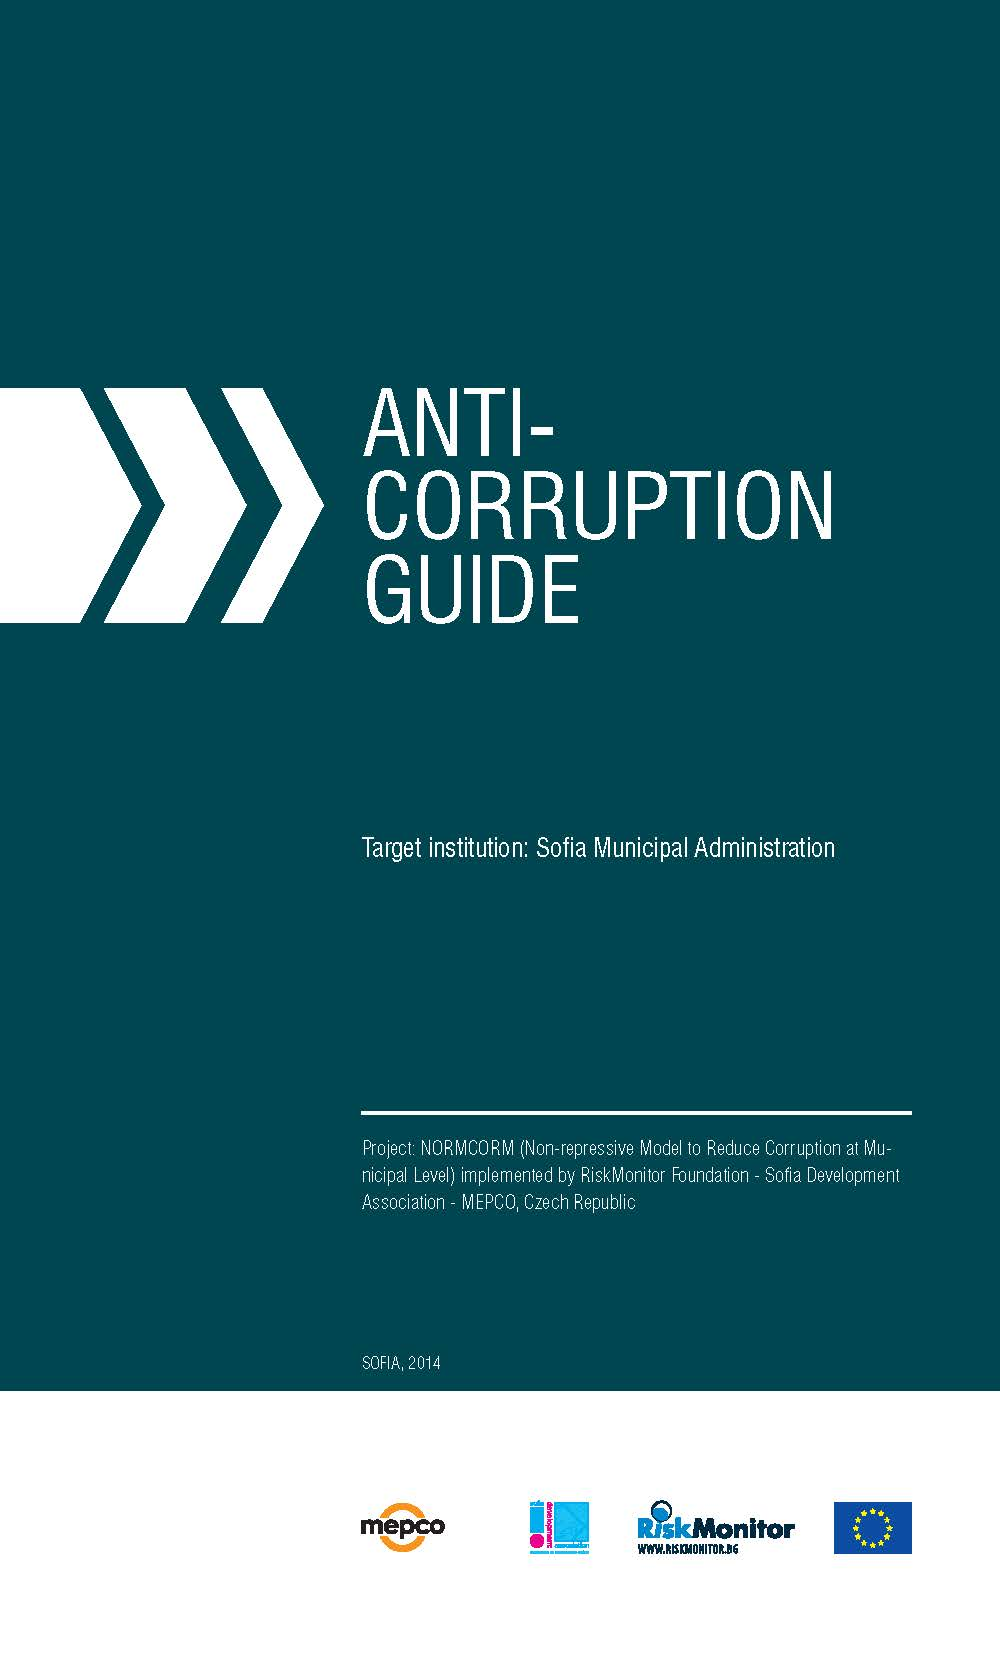 ANTI - CORRUPTION GUIDE Target institution: Sofia Municipal Administration